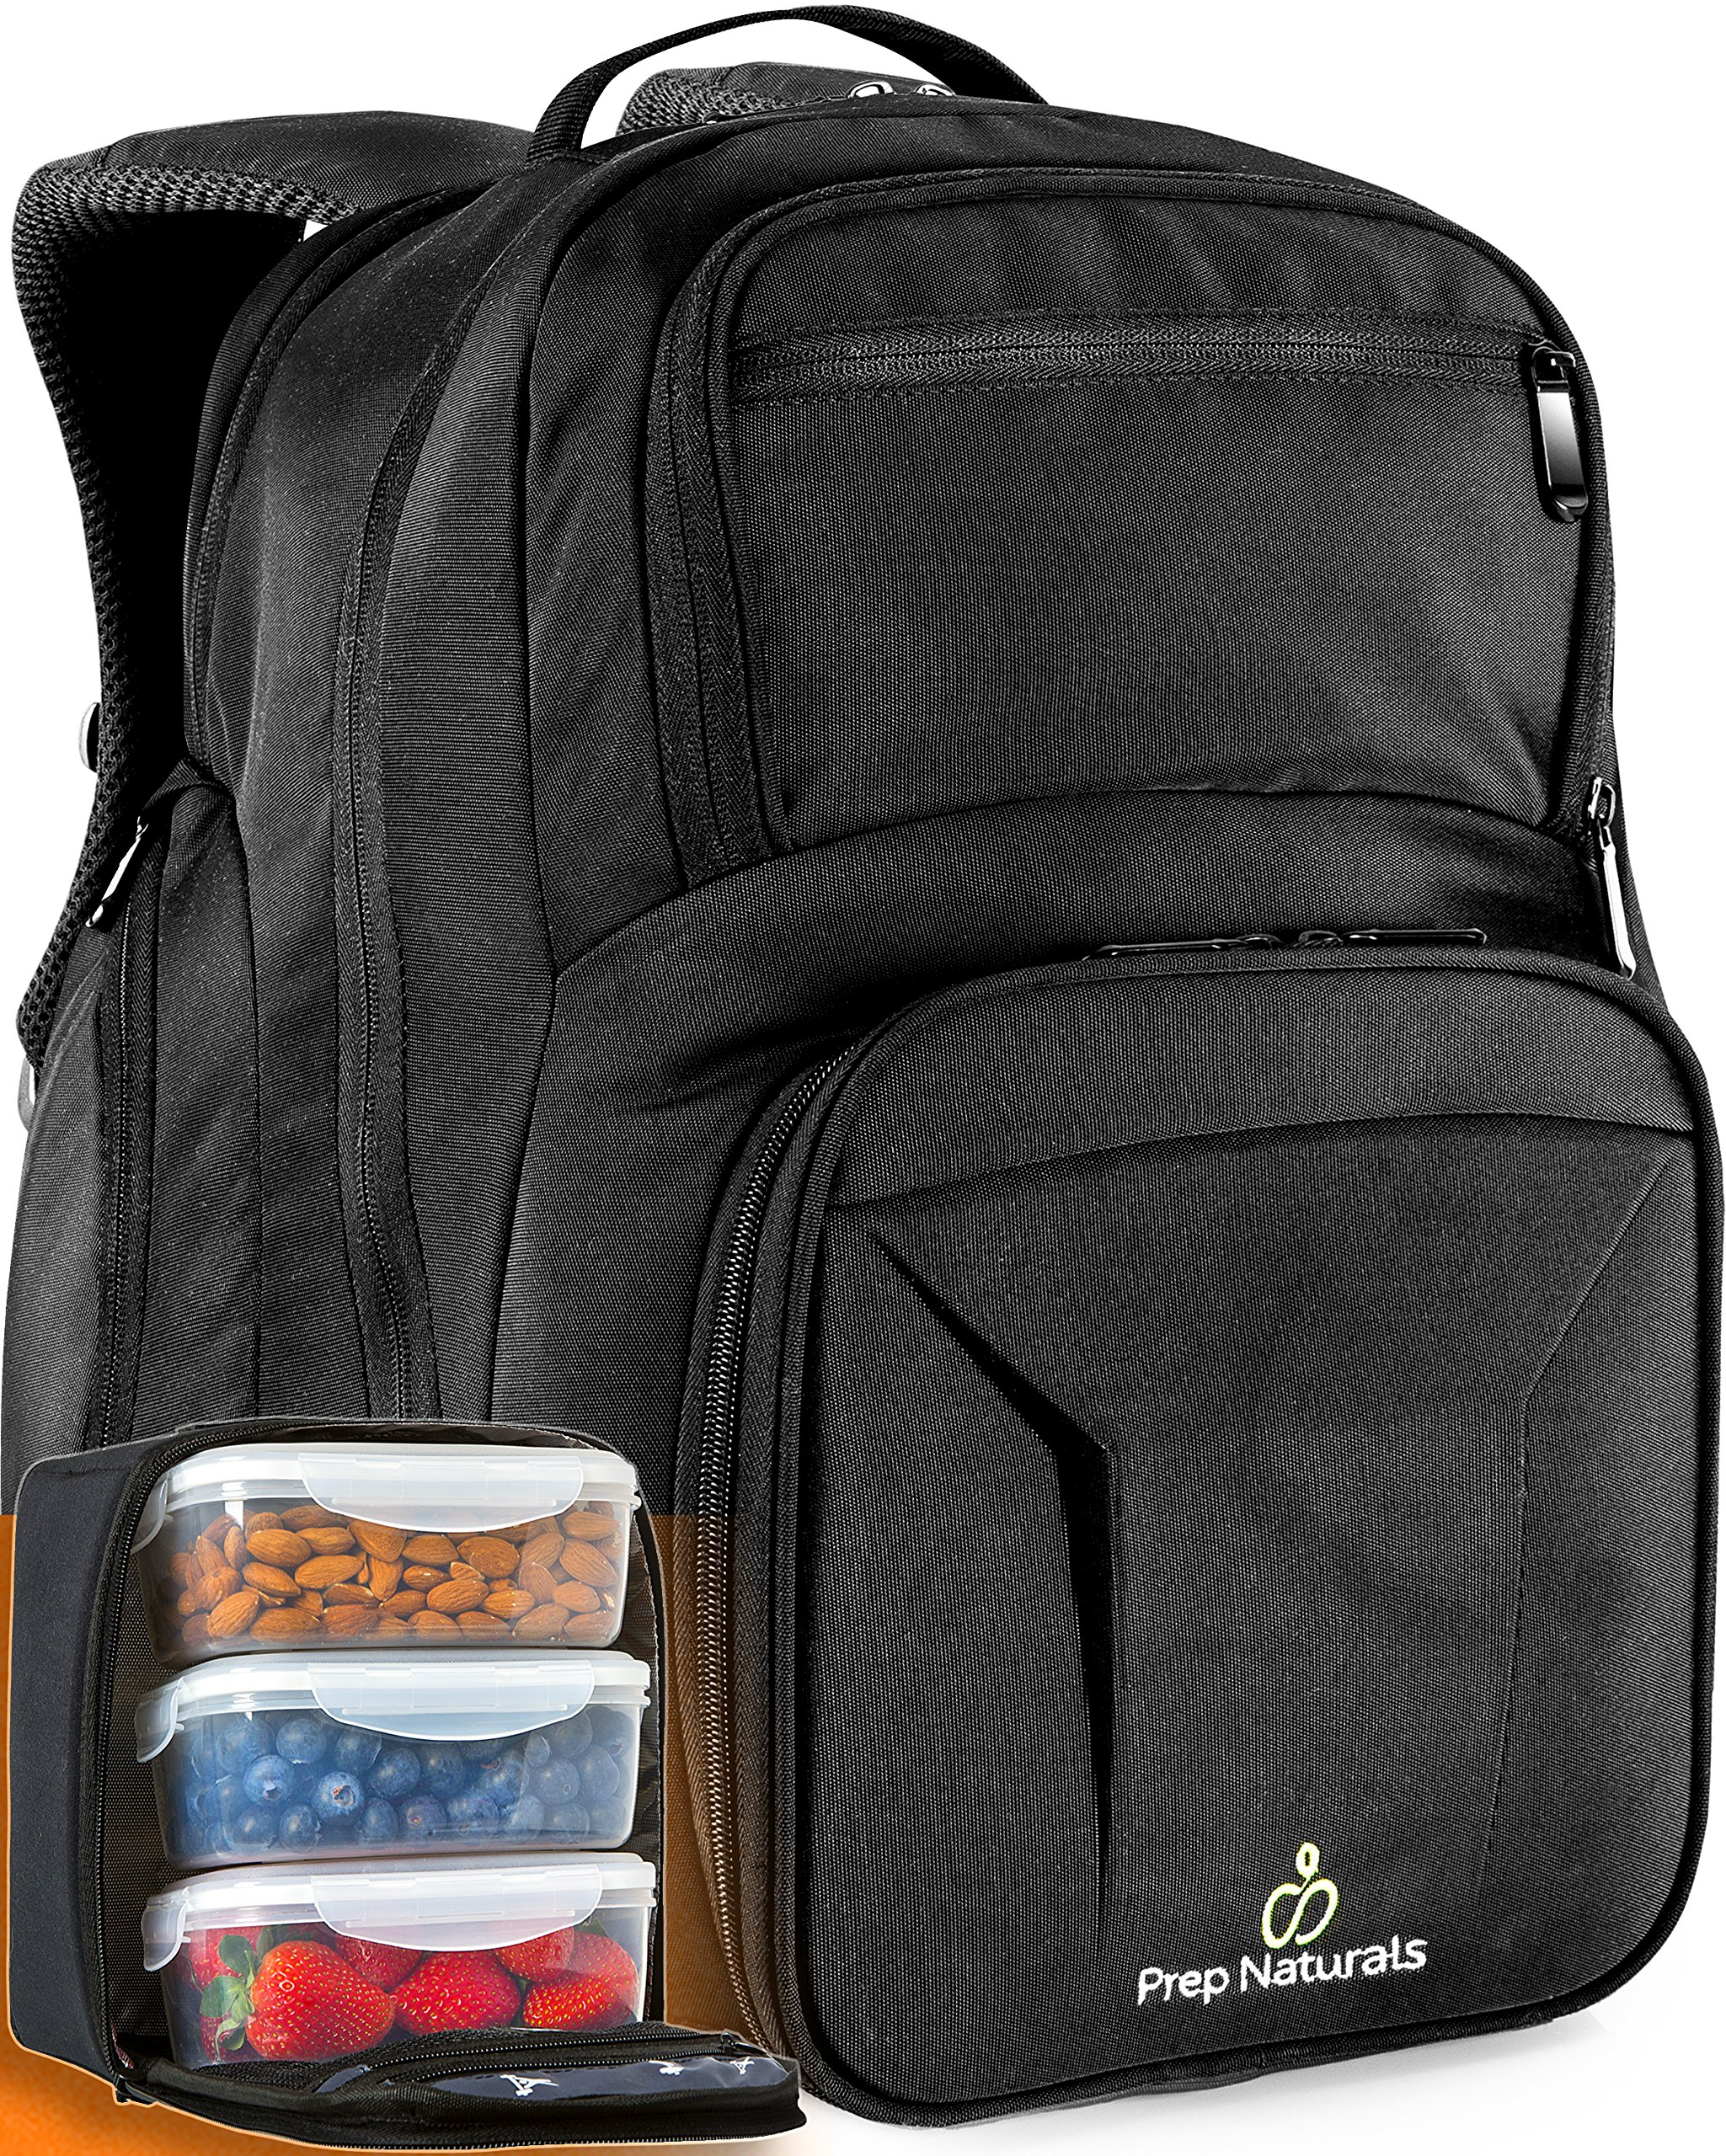 Meal Prep Backpack with Meal Prep Containers - Meal prep Bag Meal Prep Lunch Box - Meal Prep Backpack Lunch box Meal Prep Lunch bag Lunch bag with containers Insulated Lunch bag for men Lunchbox Tote